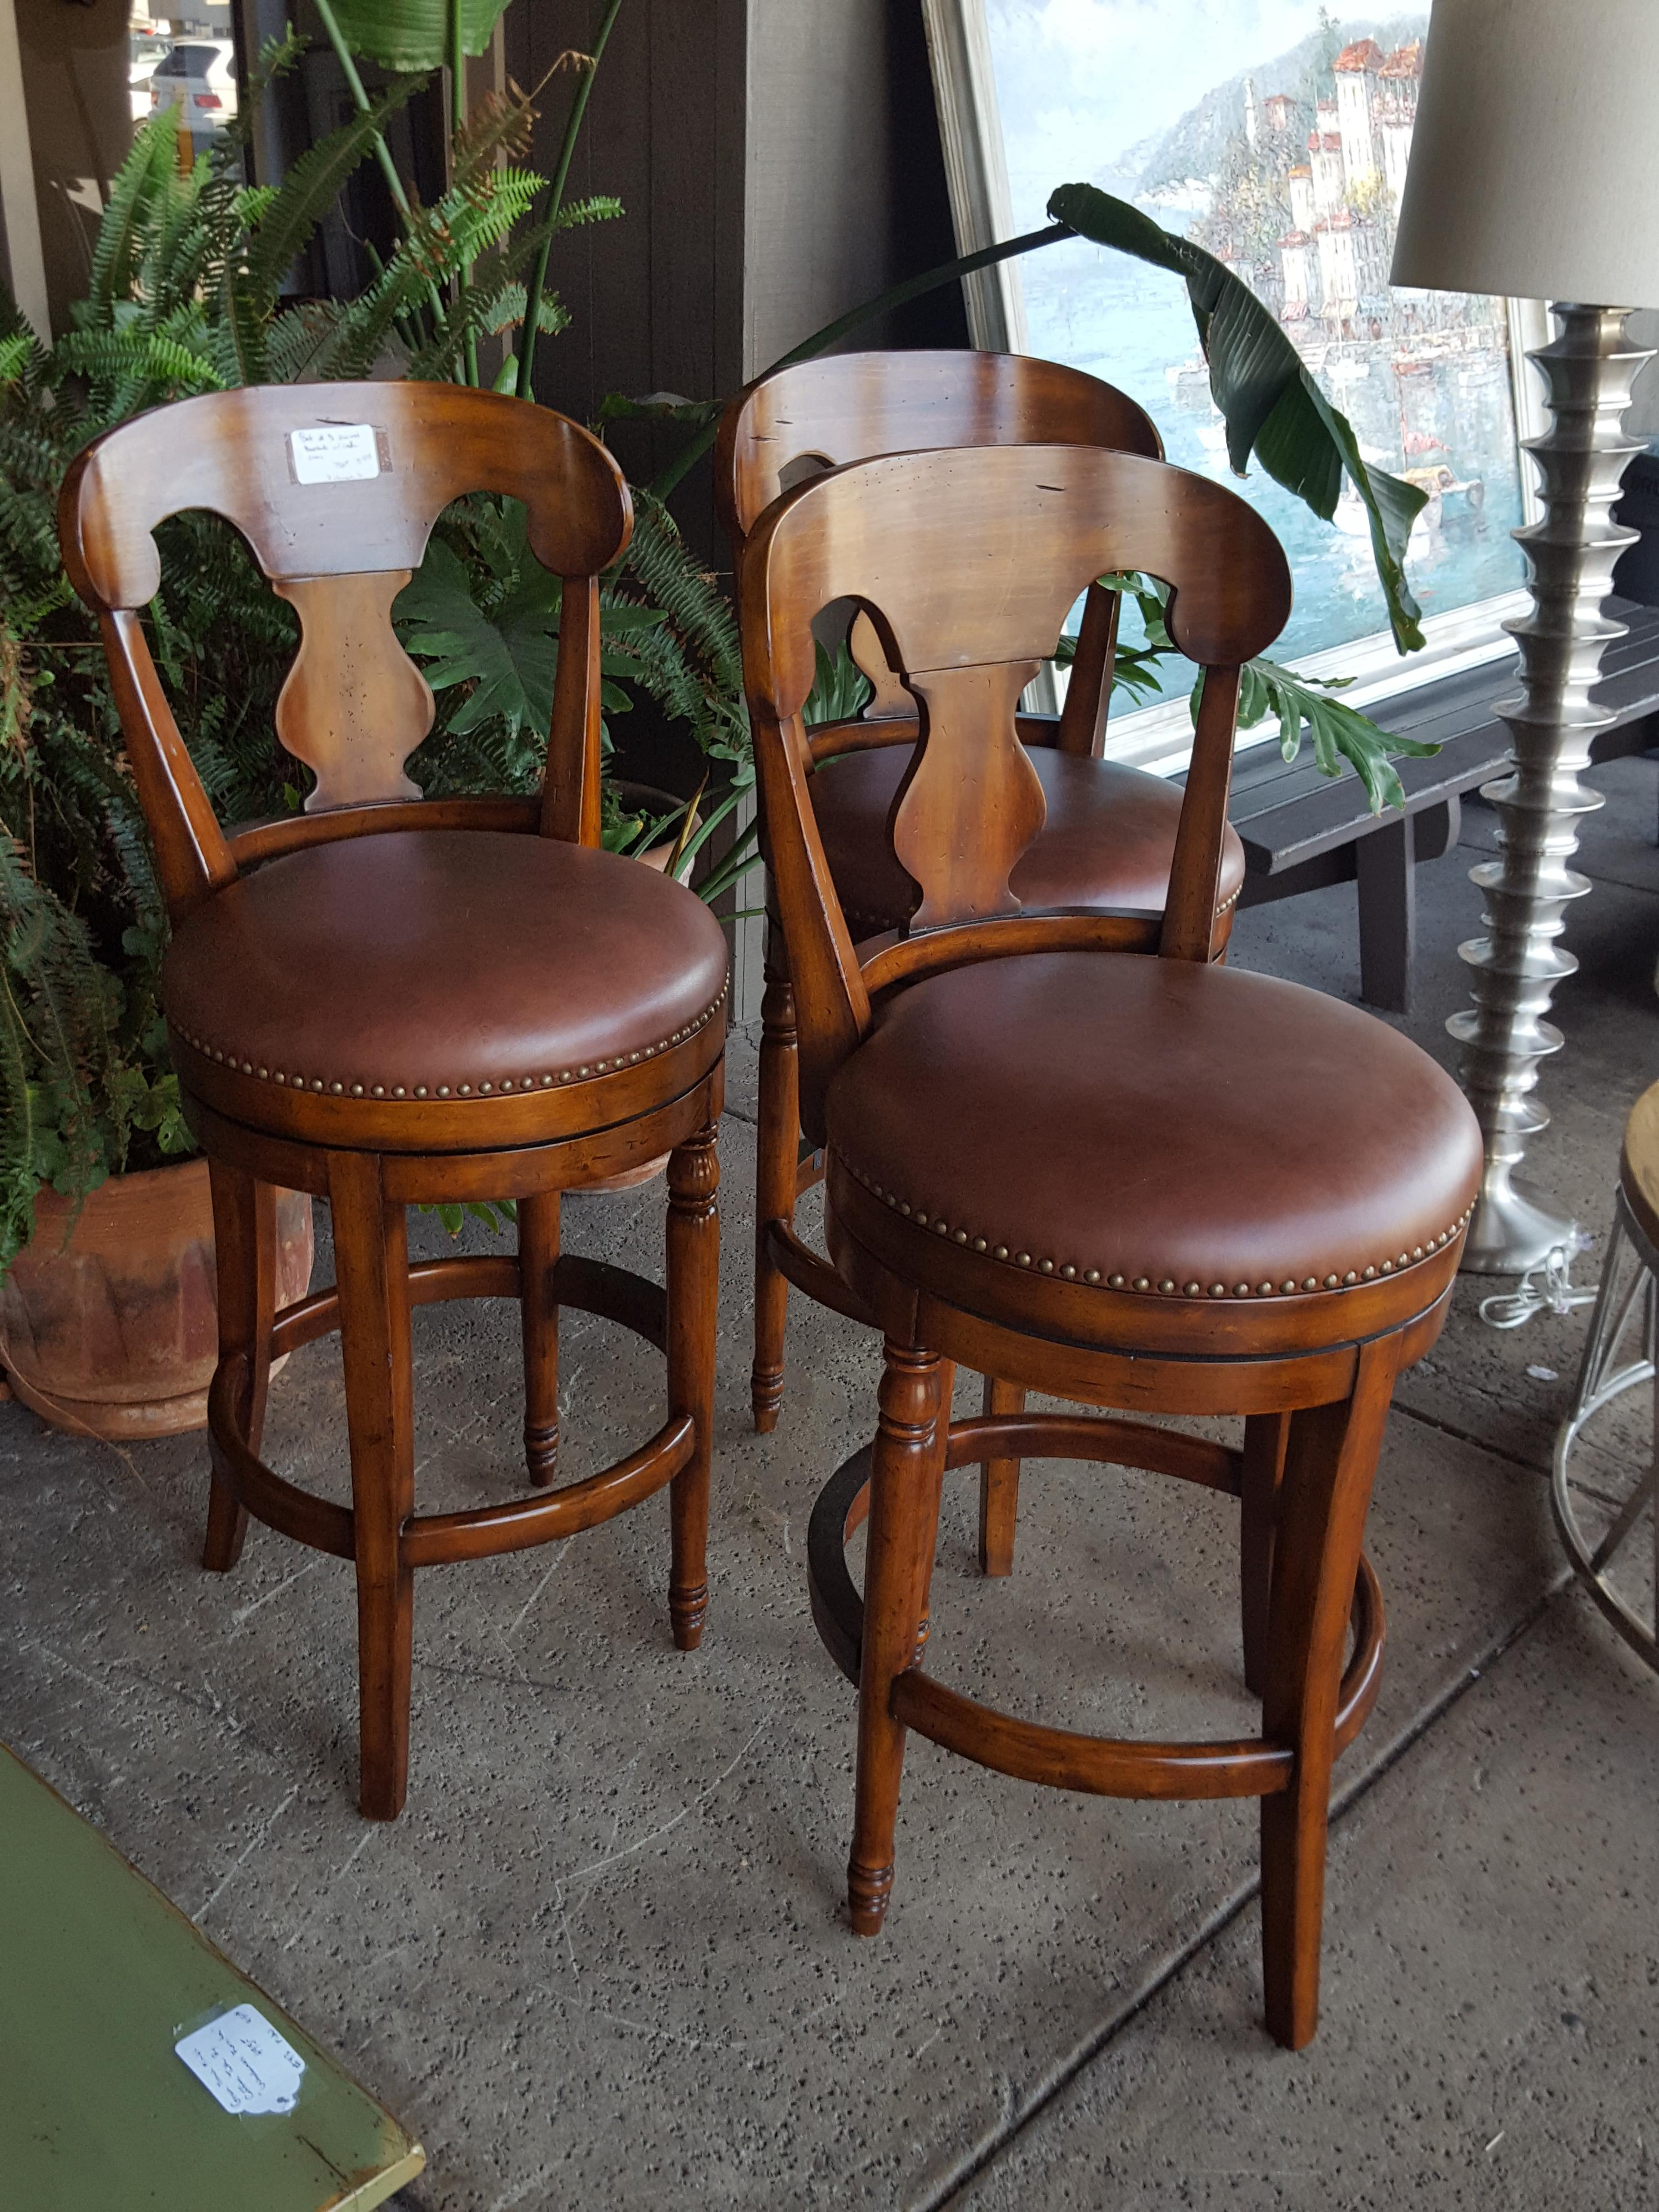 Set of 3 mahogany finished counter Chairs, Benches, Stools Price: $750.00